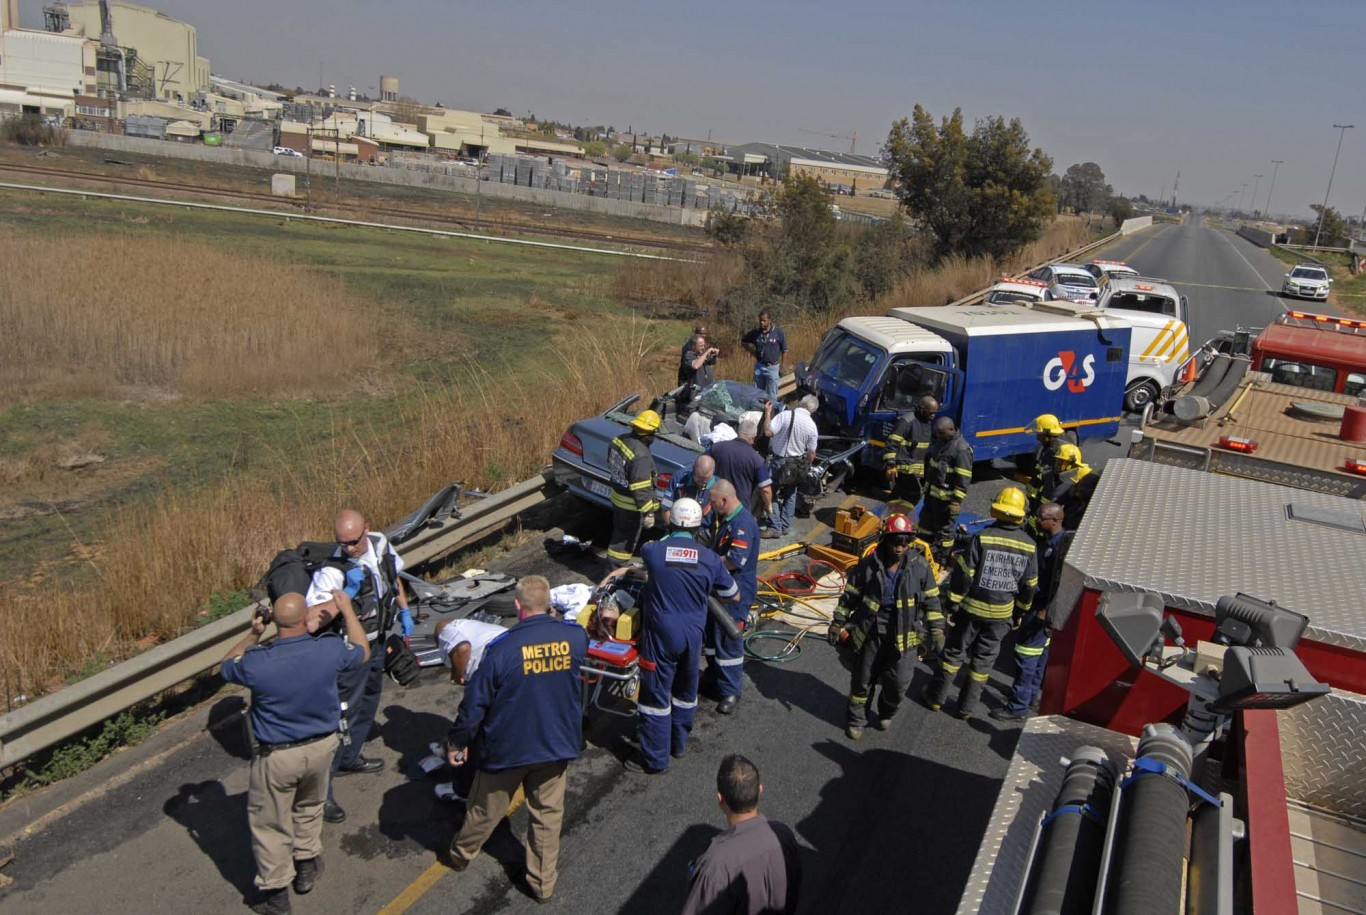 Child and baby injured in collision at intersection in Bloemfontein